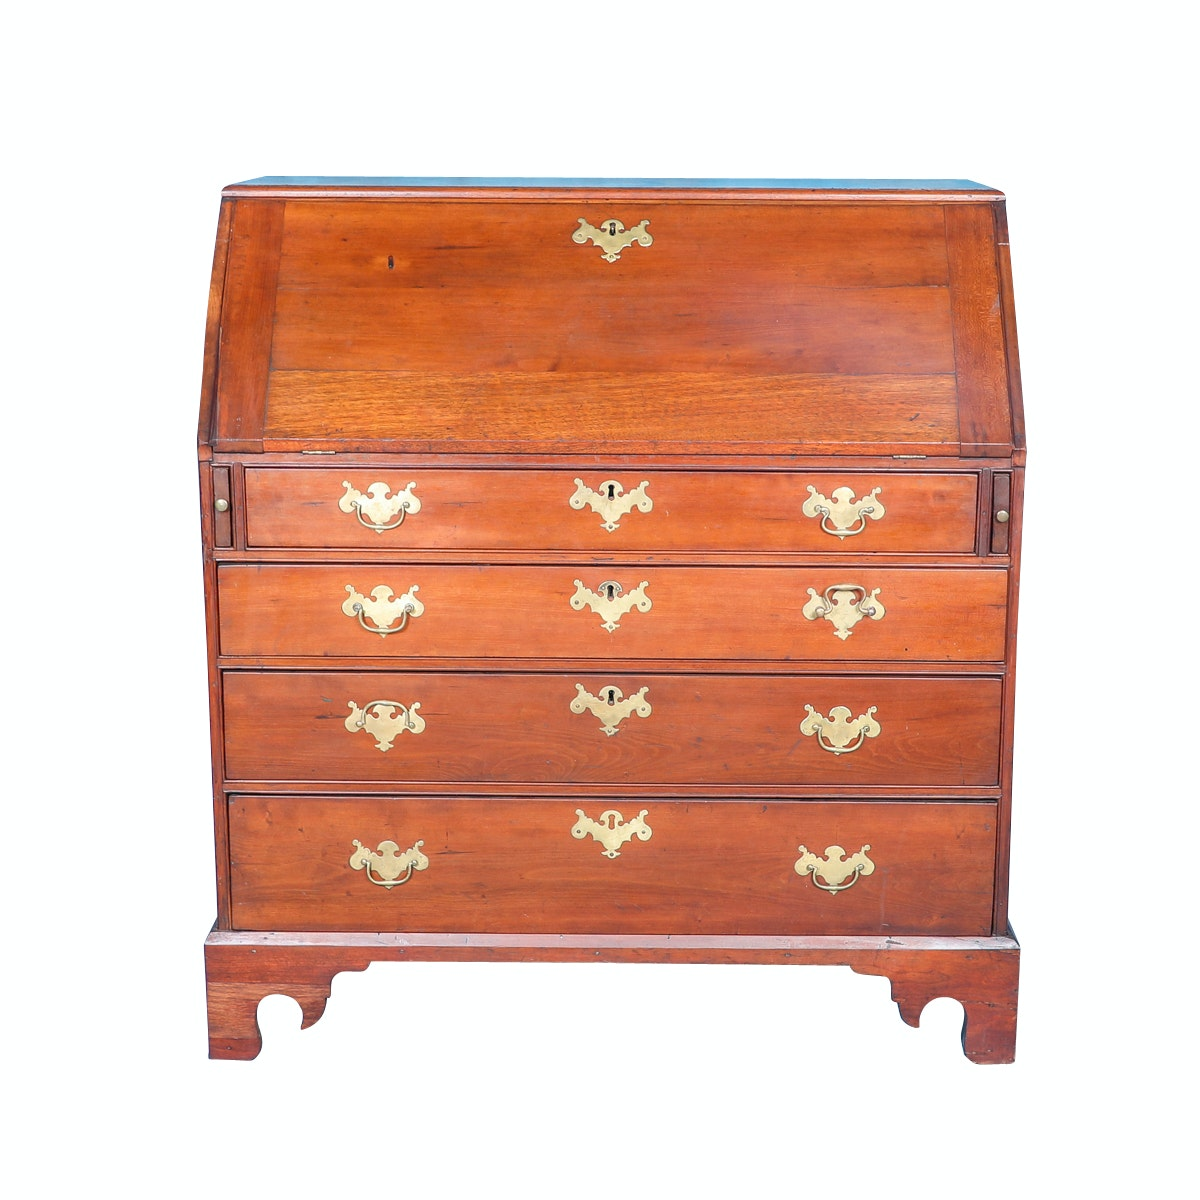 Antique George II Style Secretary Desk, Circa 1700s